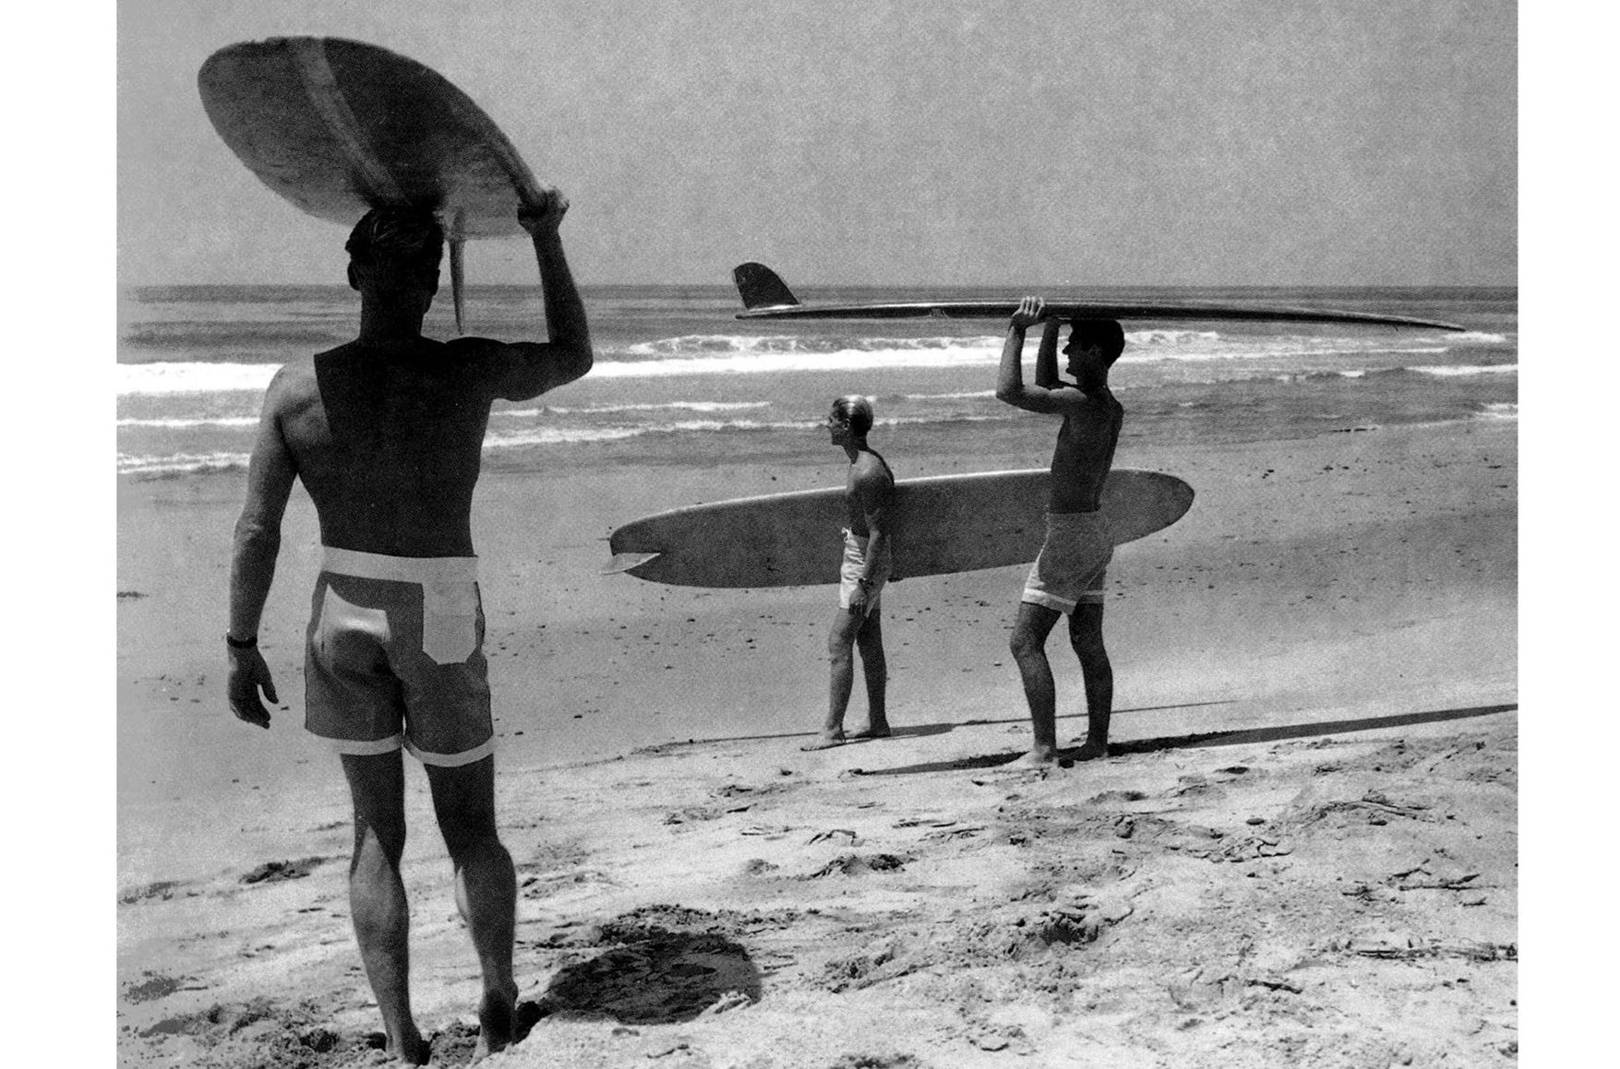 The Endless Summers Mike Hynson On How To Surf Like A Gentleman By